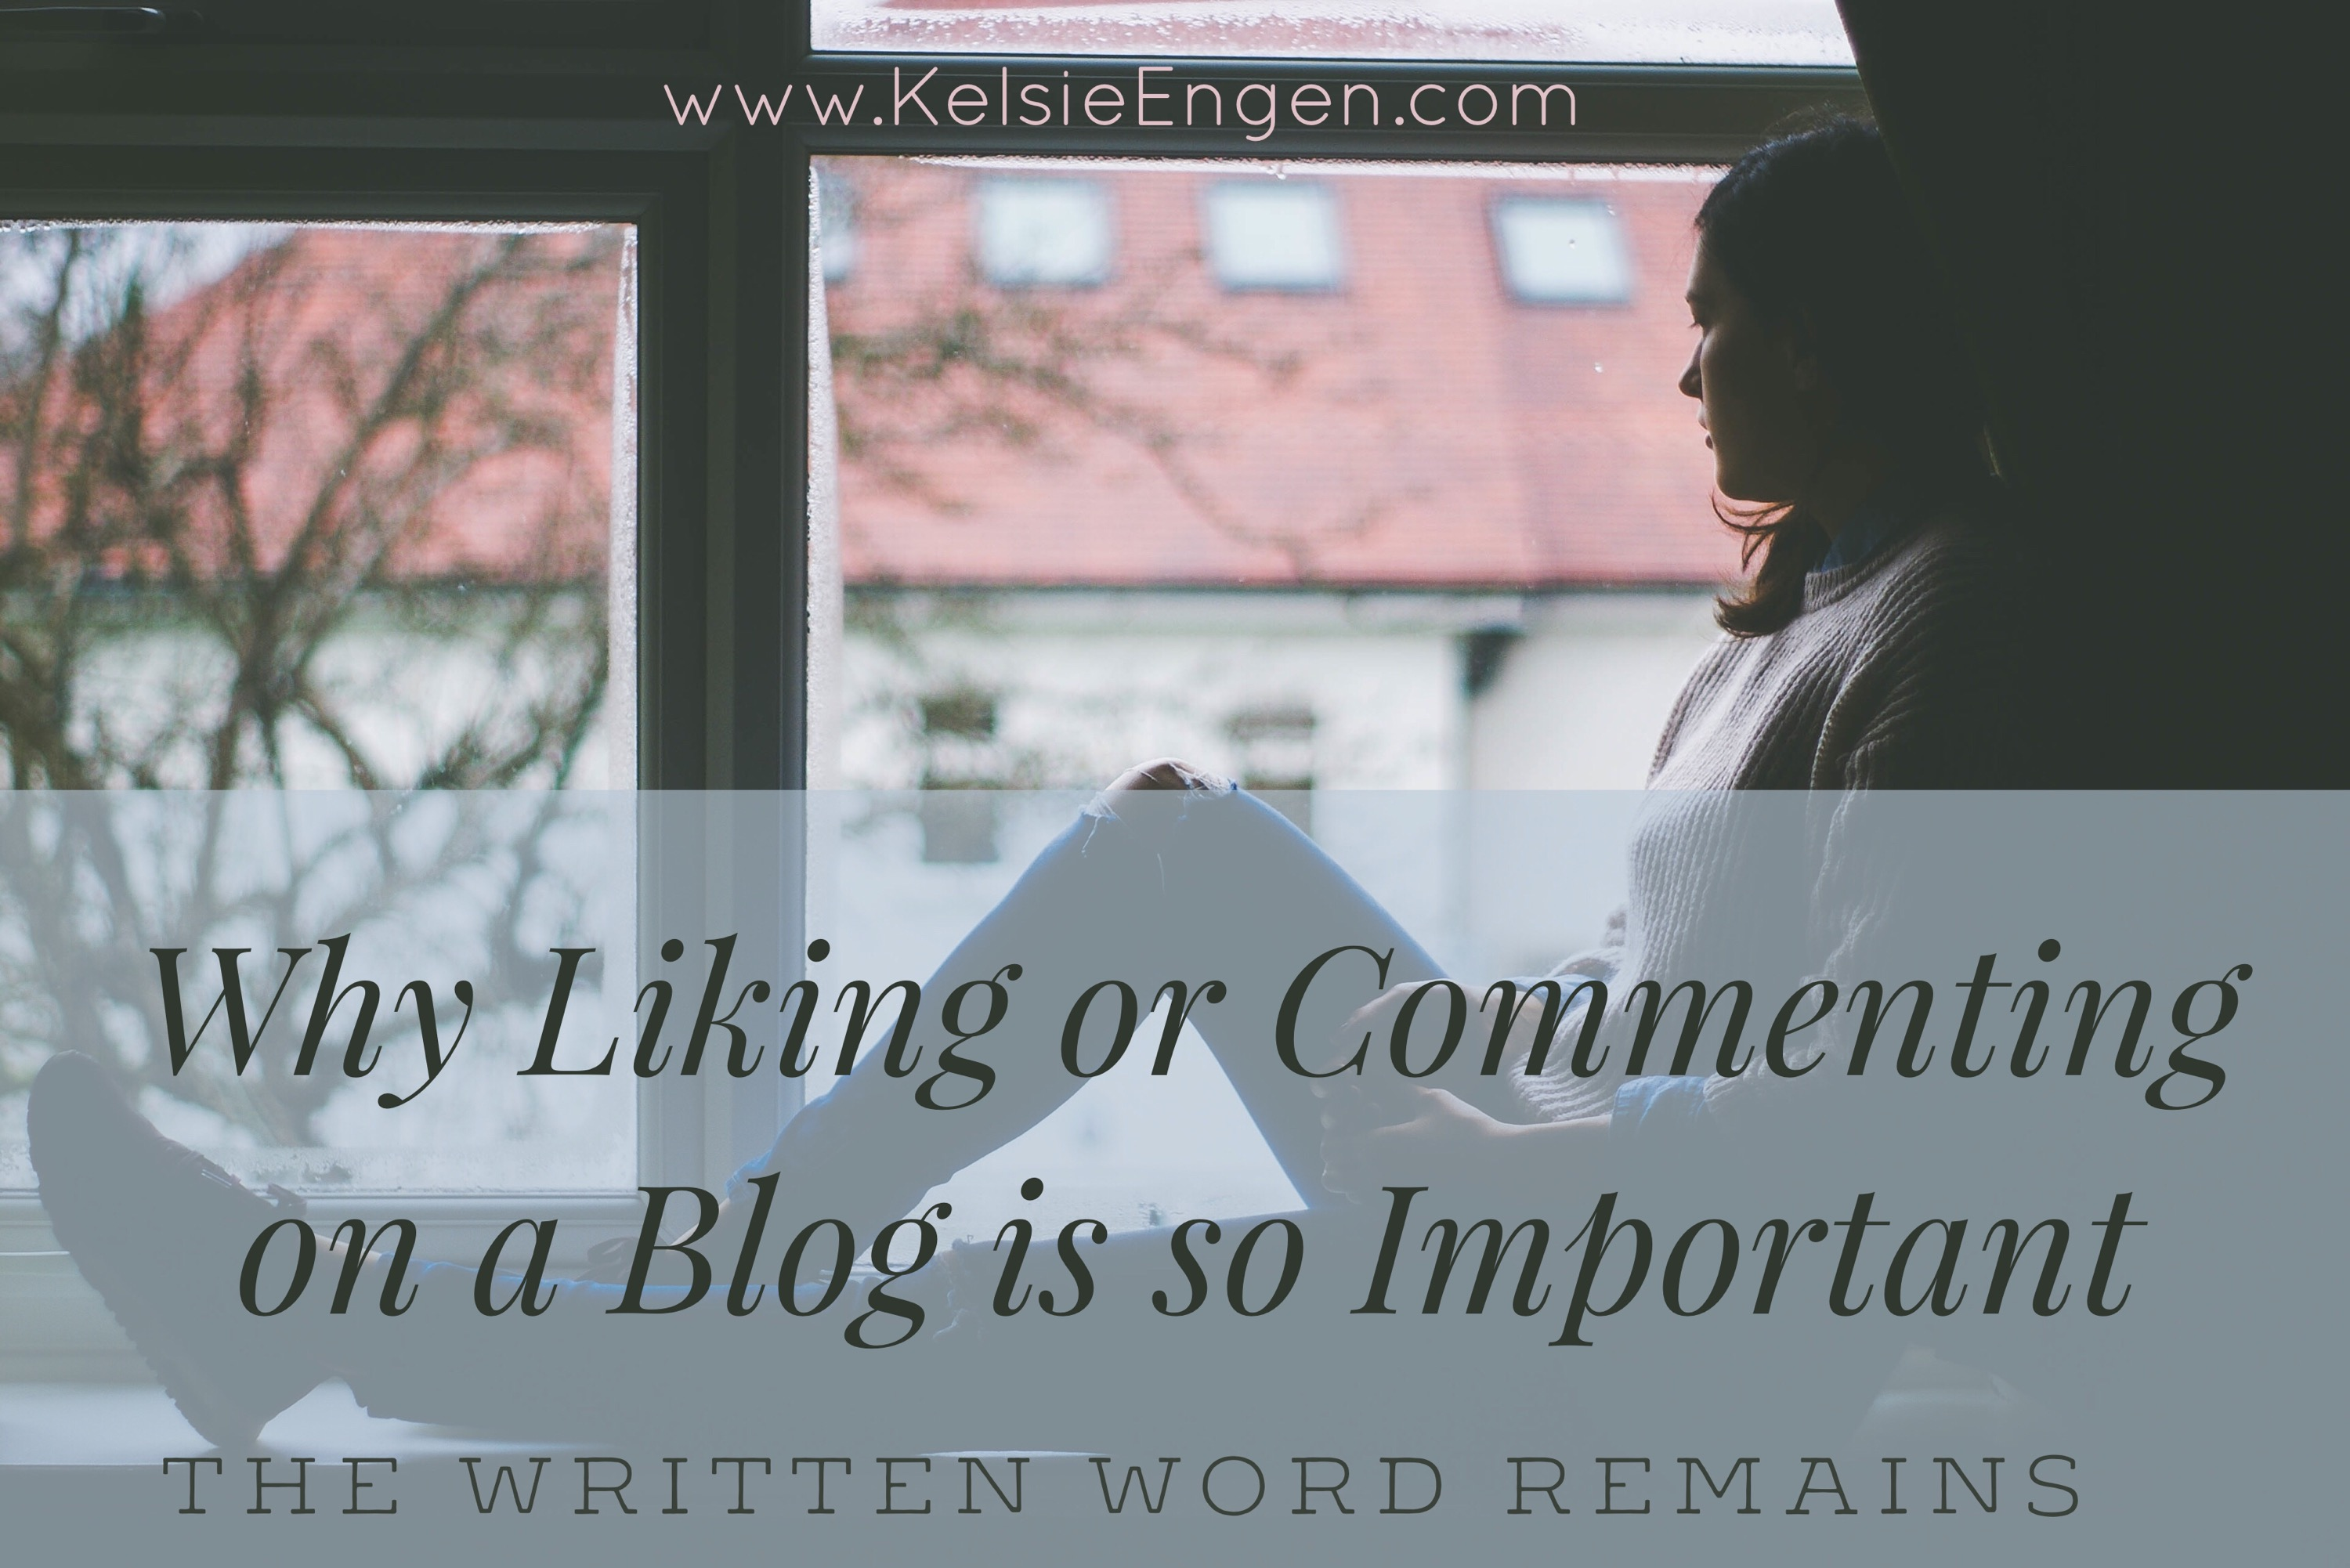 Why Liking or Commenting on a Blog is so Important